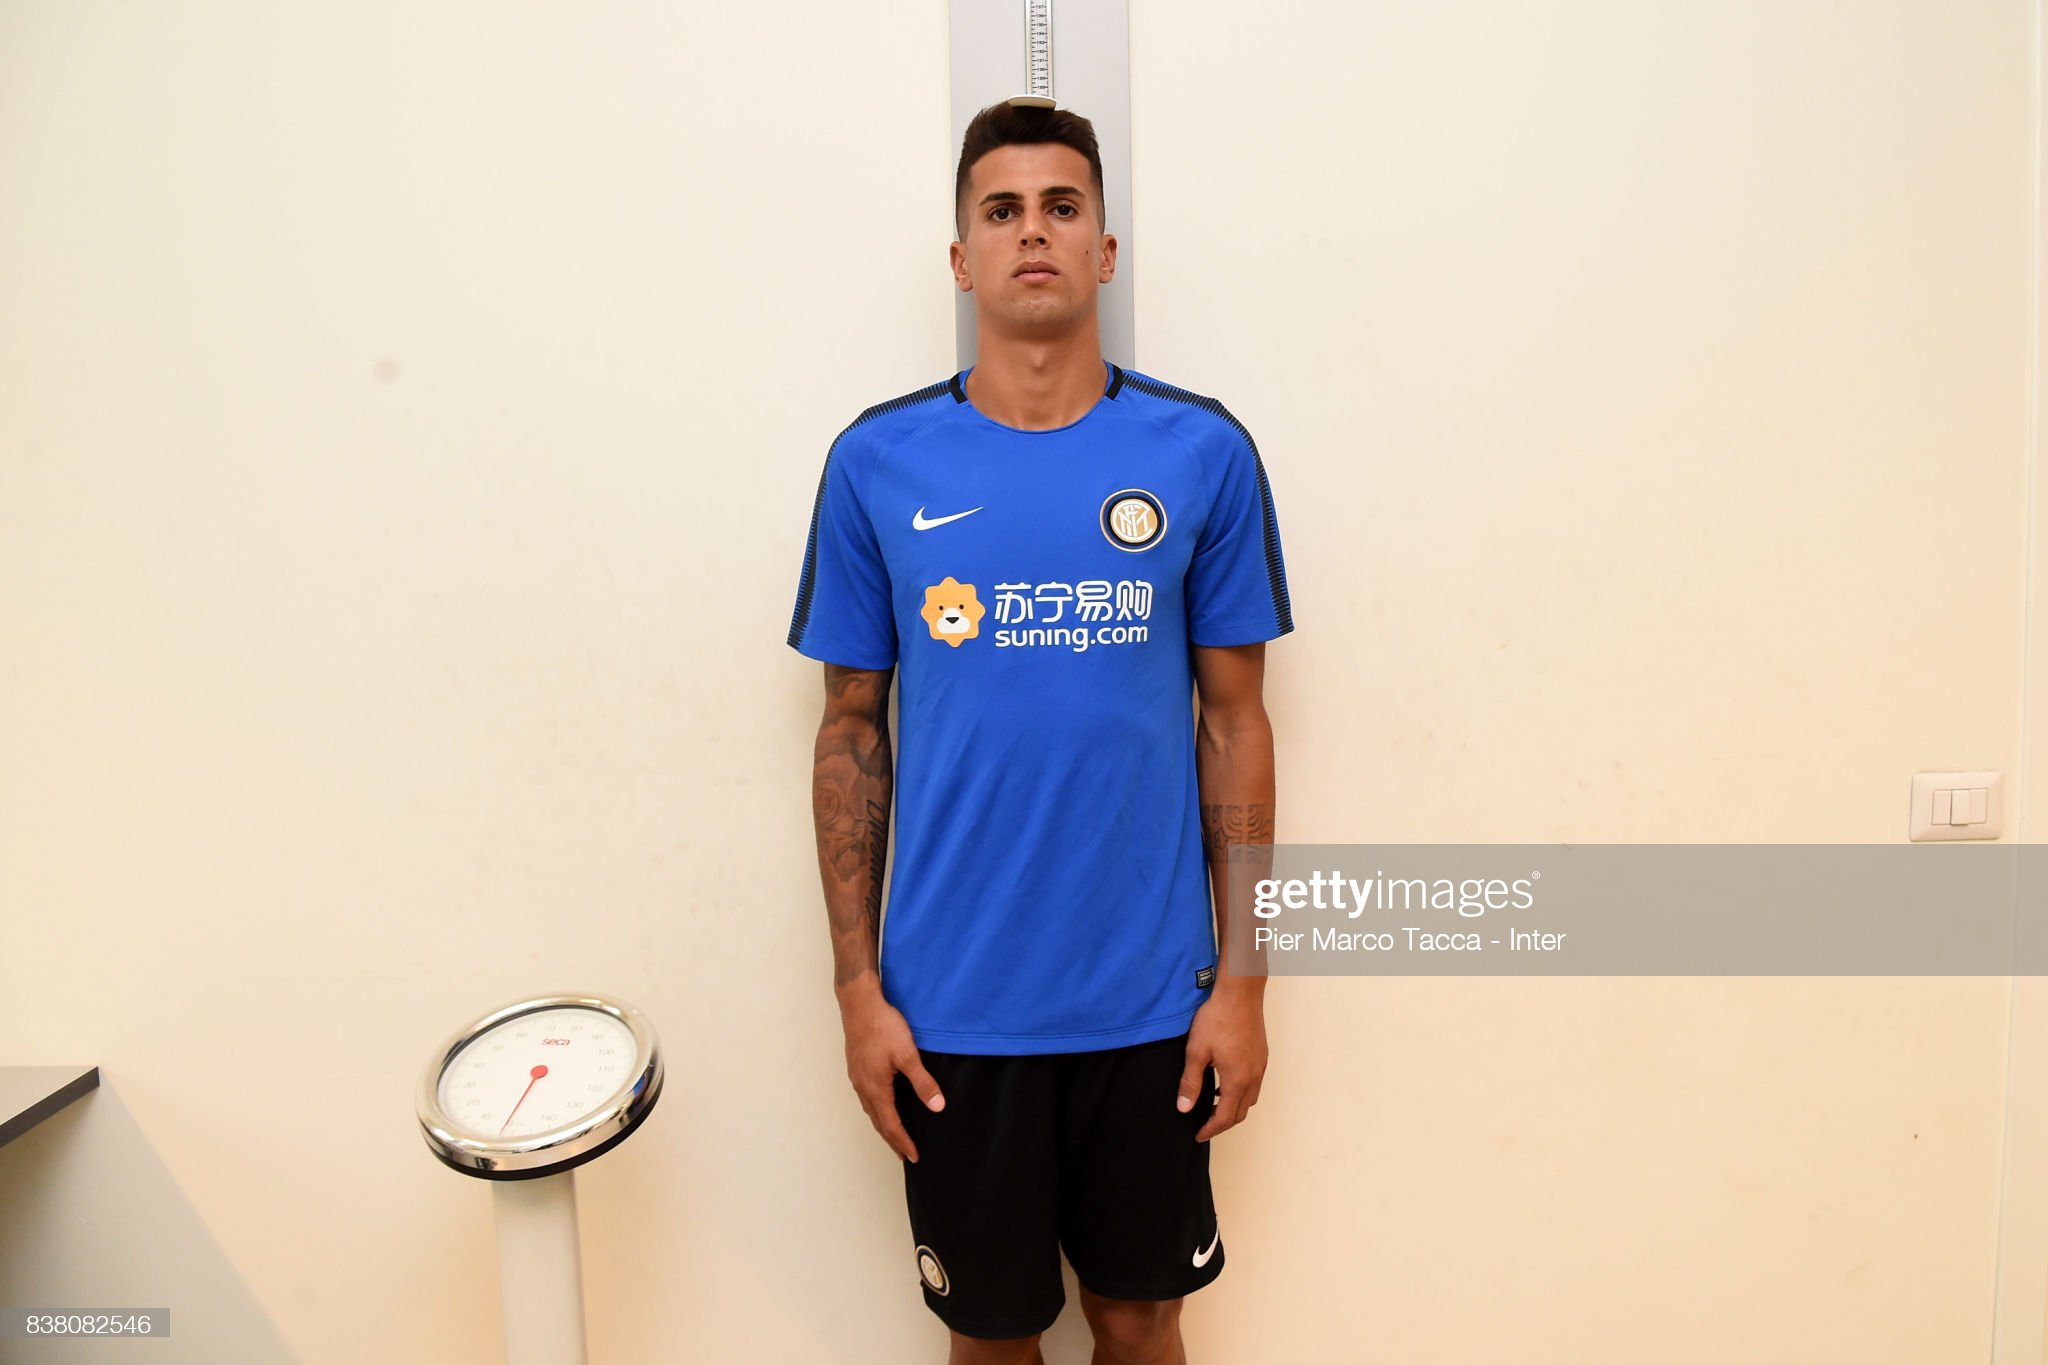 Hay jugadores a los que les miden calzados en las pruebas médicas For-fc-internazionale-new-signing-joao-cancelo-attends-medical-tests-picture-id838082546?s=2048x2048